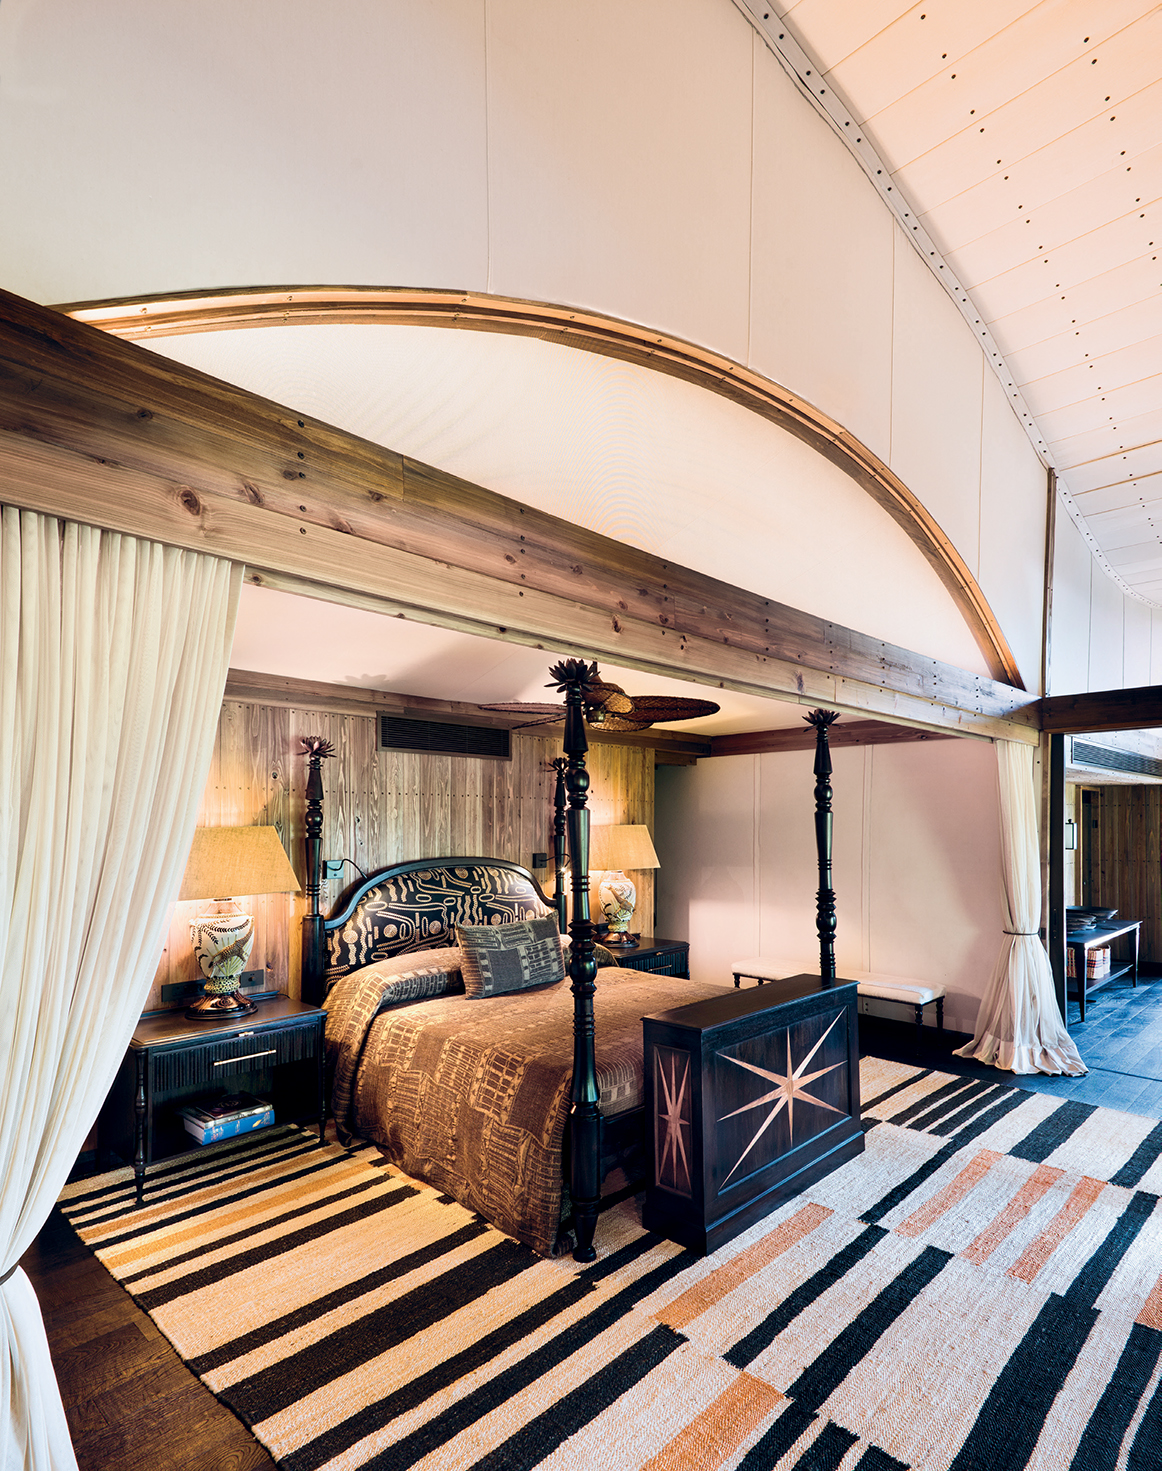 The four-poster bed in this suite is topped with cast-bronze water-lily finials, and the headboard is upholstered in Tasmania fabric in Ebène by Pierre Frey. The bedside lamps are by Ardmore Design, and the rug was made by Coral & Hive.